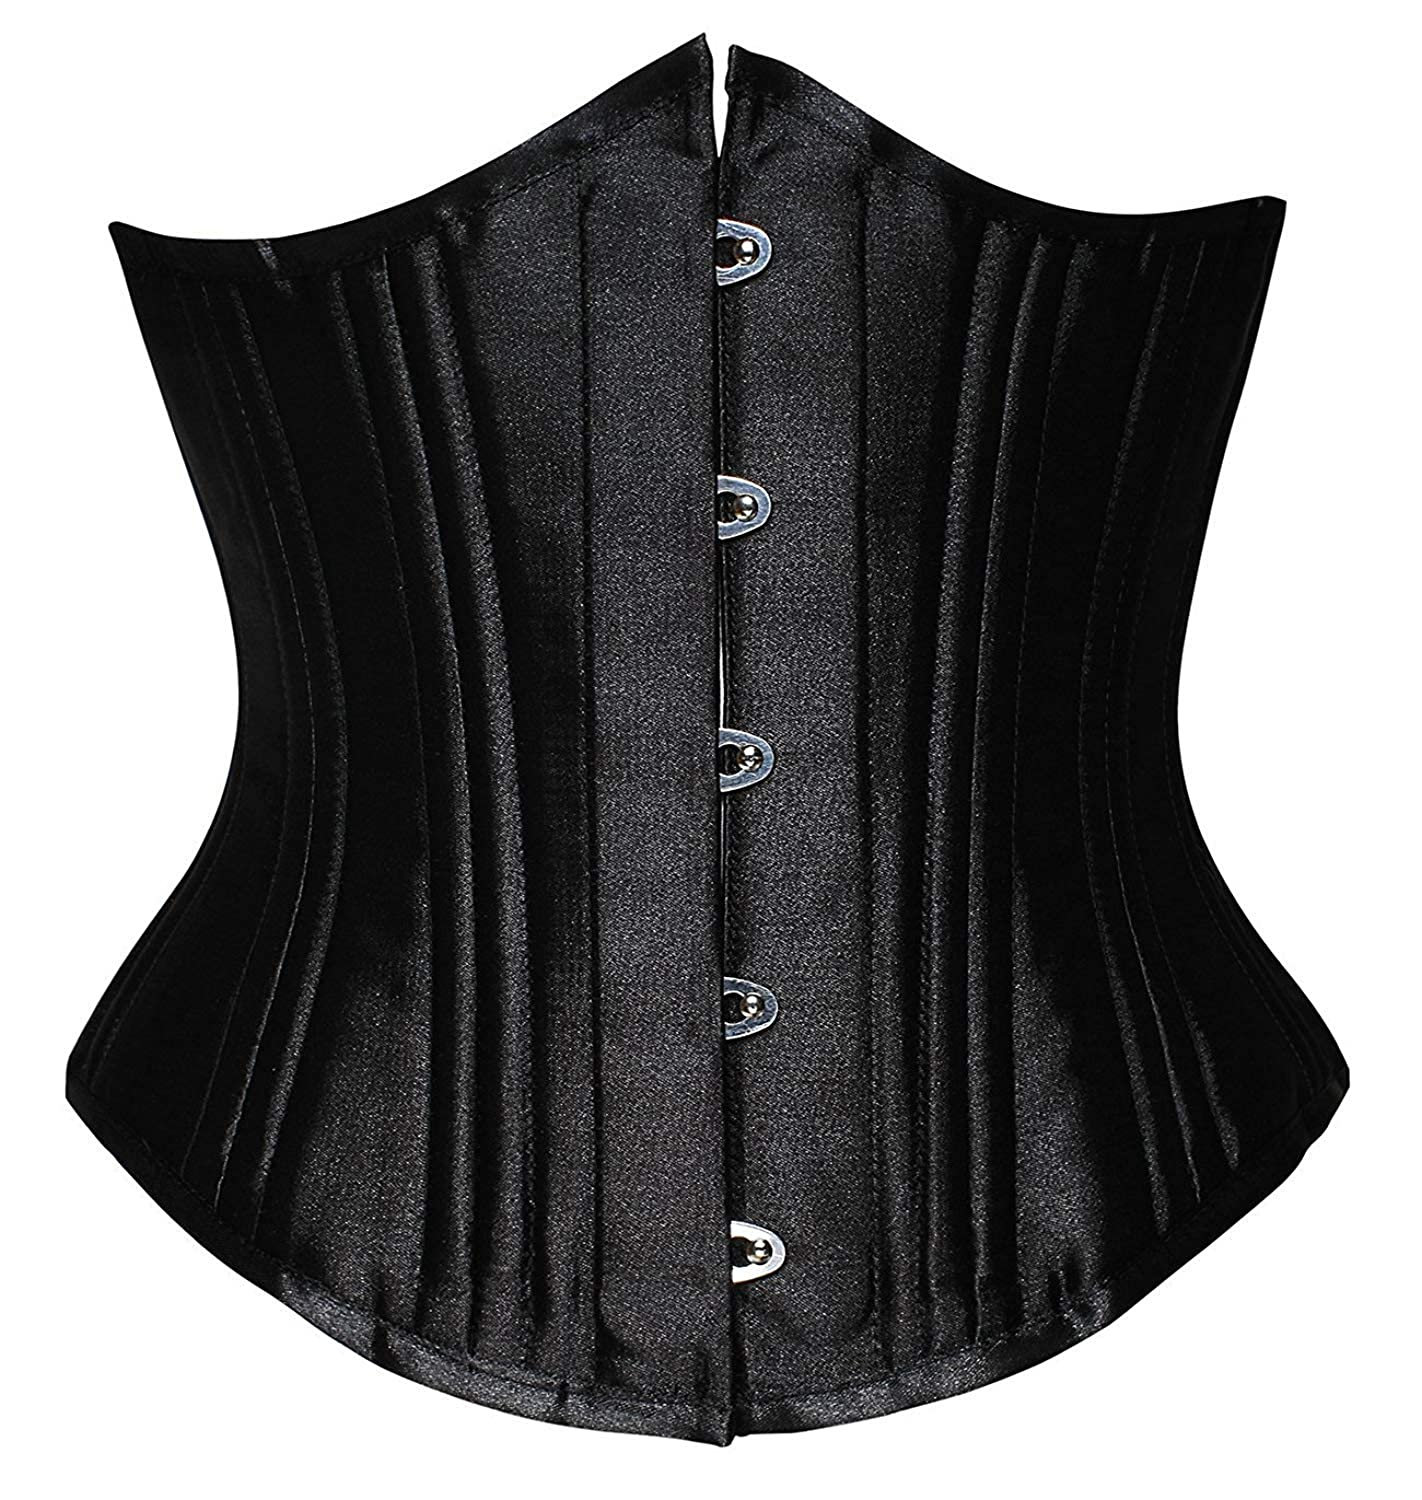 fdff54edb79 Camellias Women s 26 Steel Boned Heavy Duty Waist Trainer Corset Shaper for  Weight Loss at Amazon Women s Clothing store